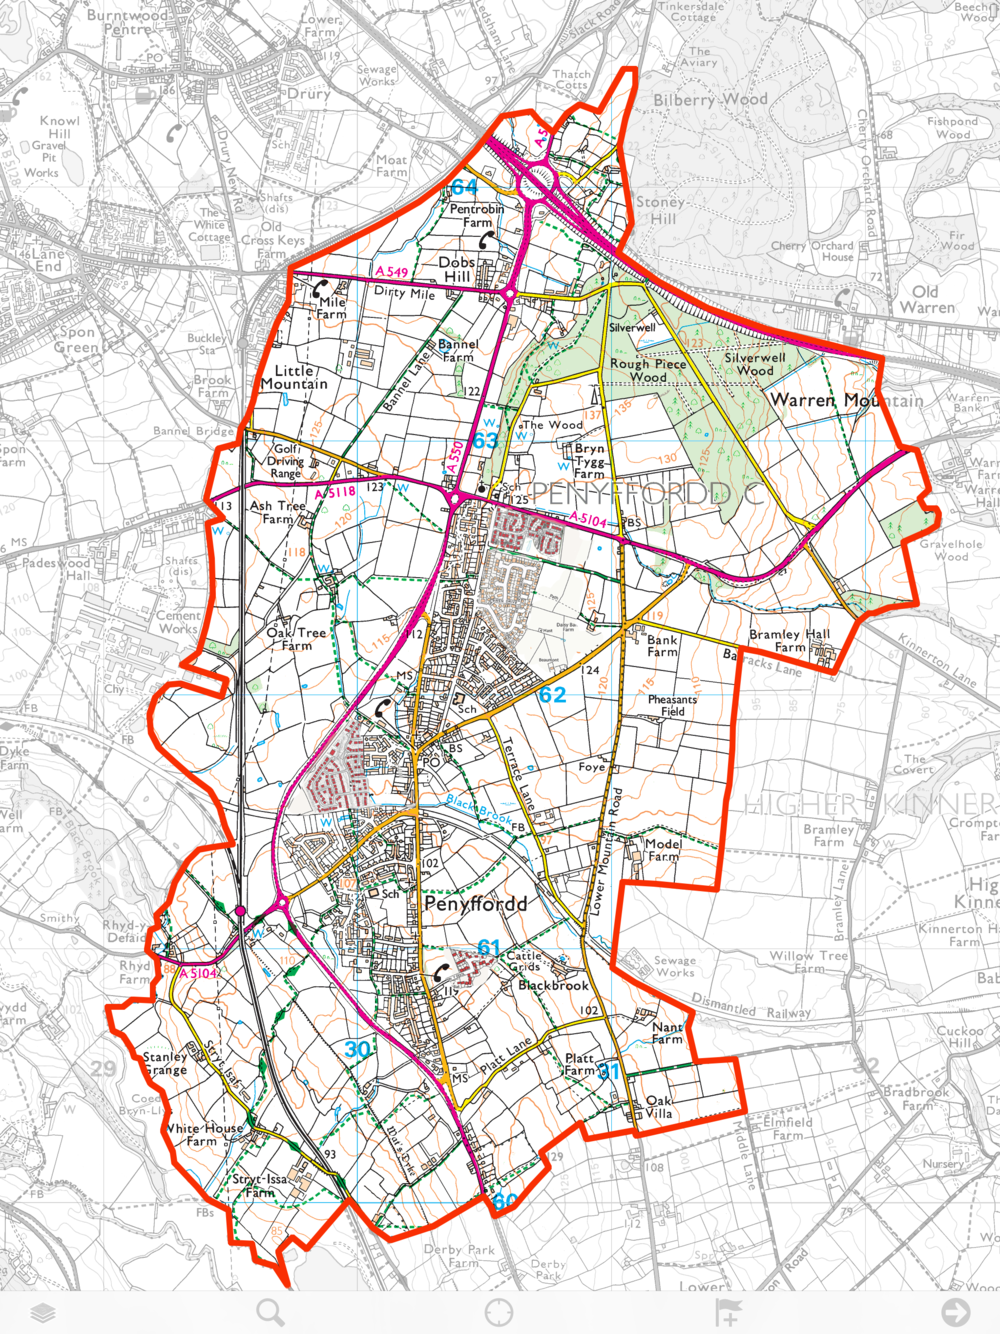 This is the area covered by the Penyffordd Ward